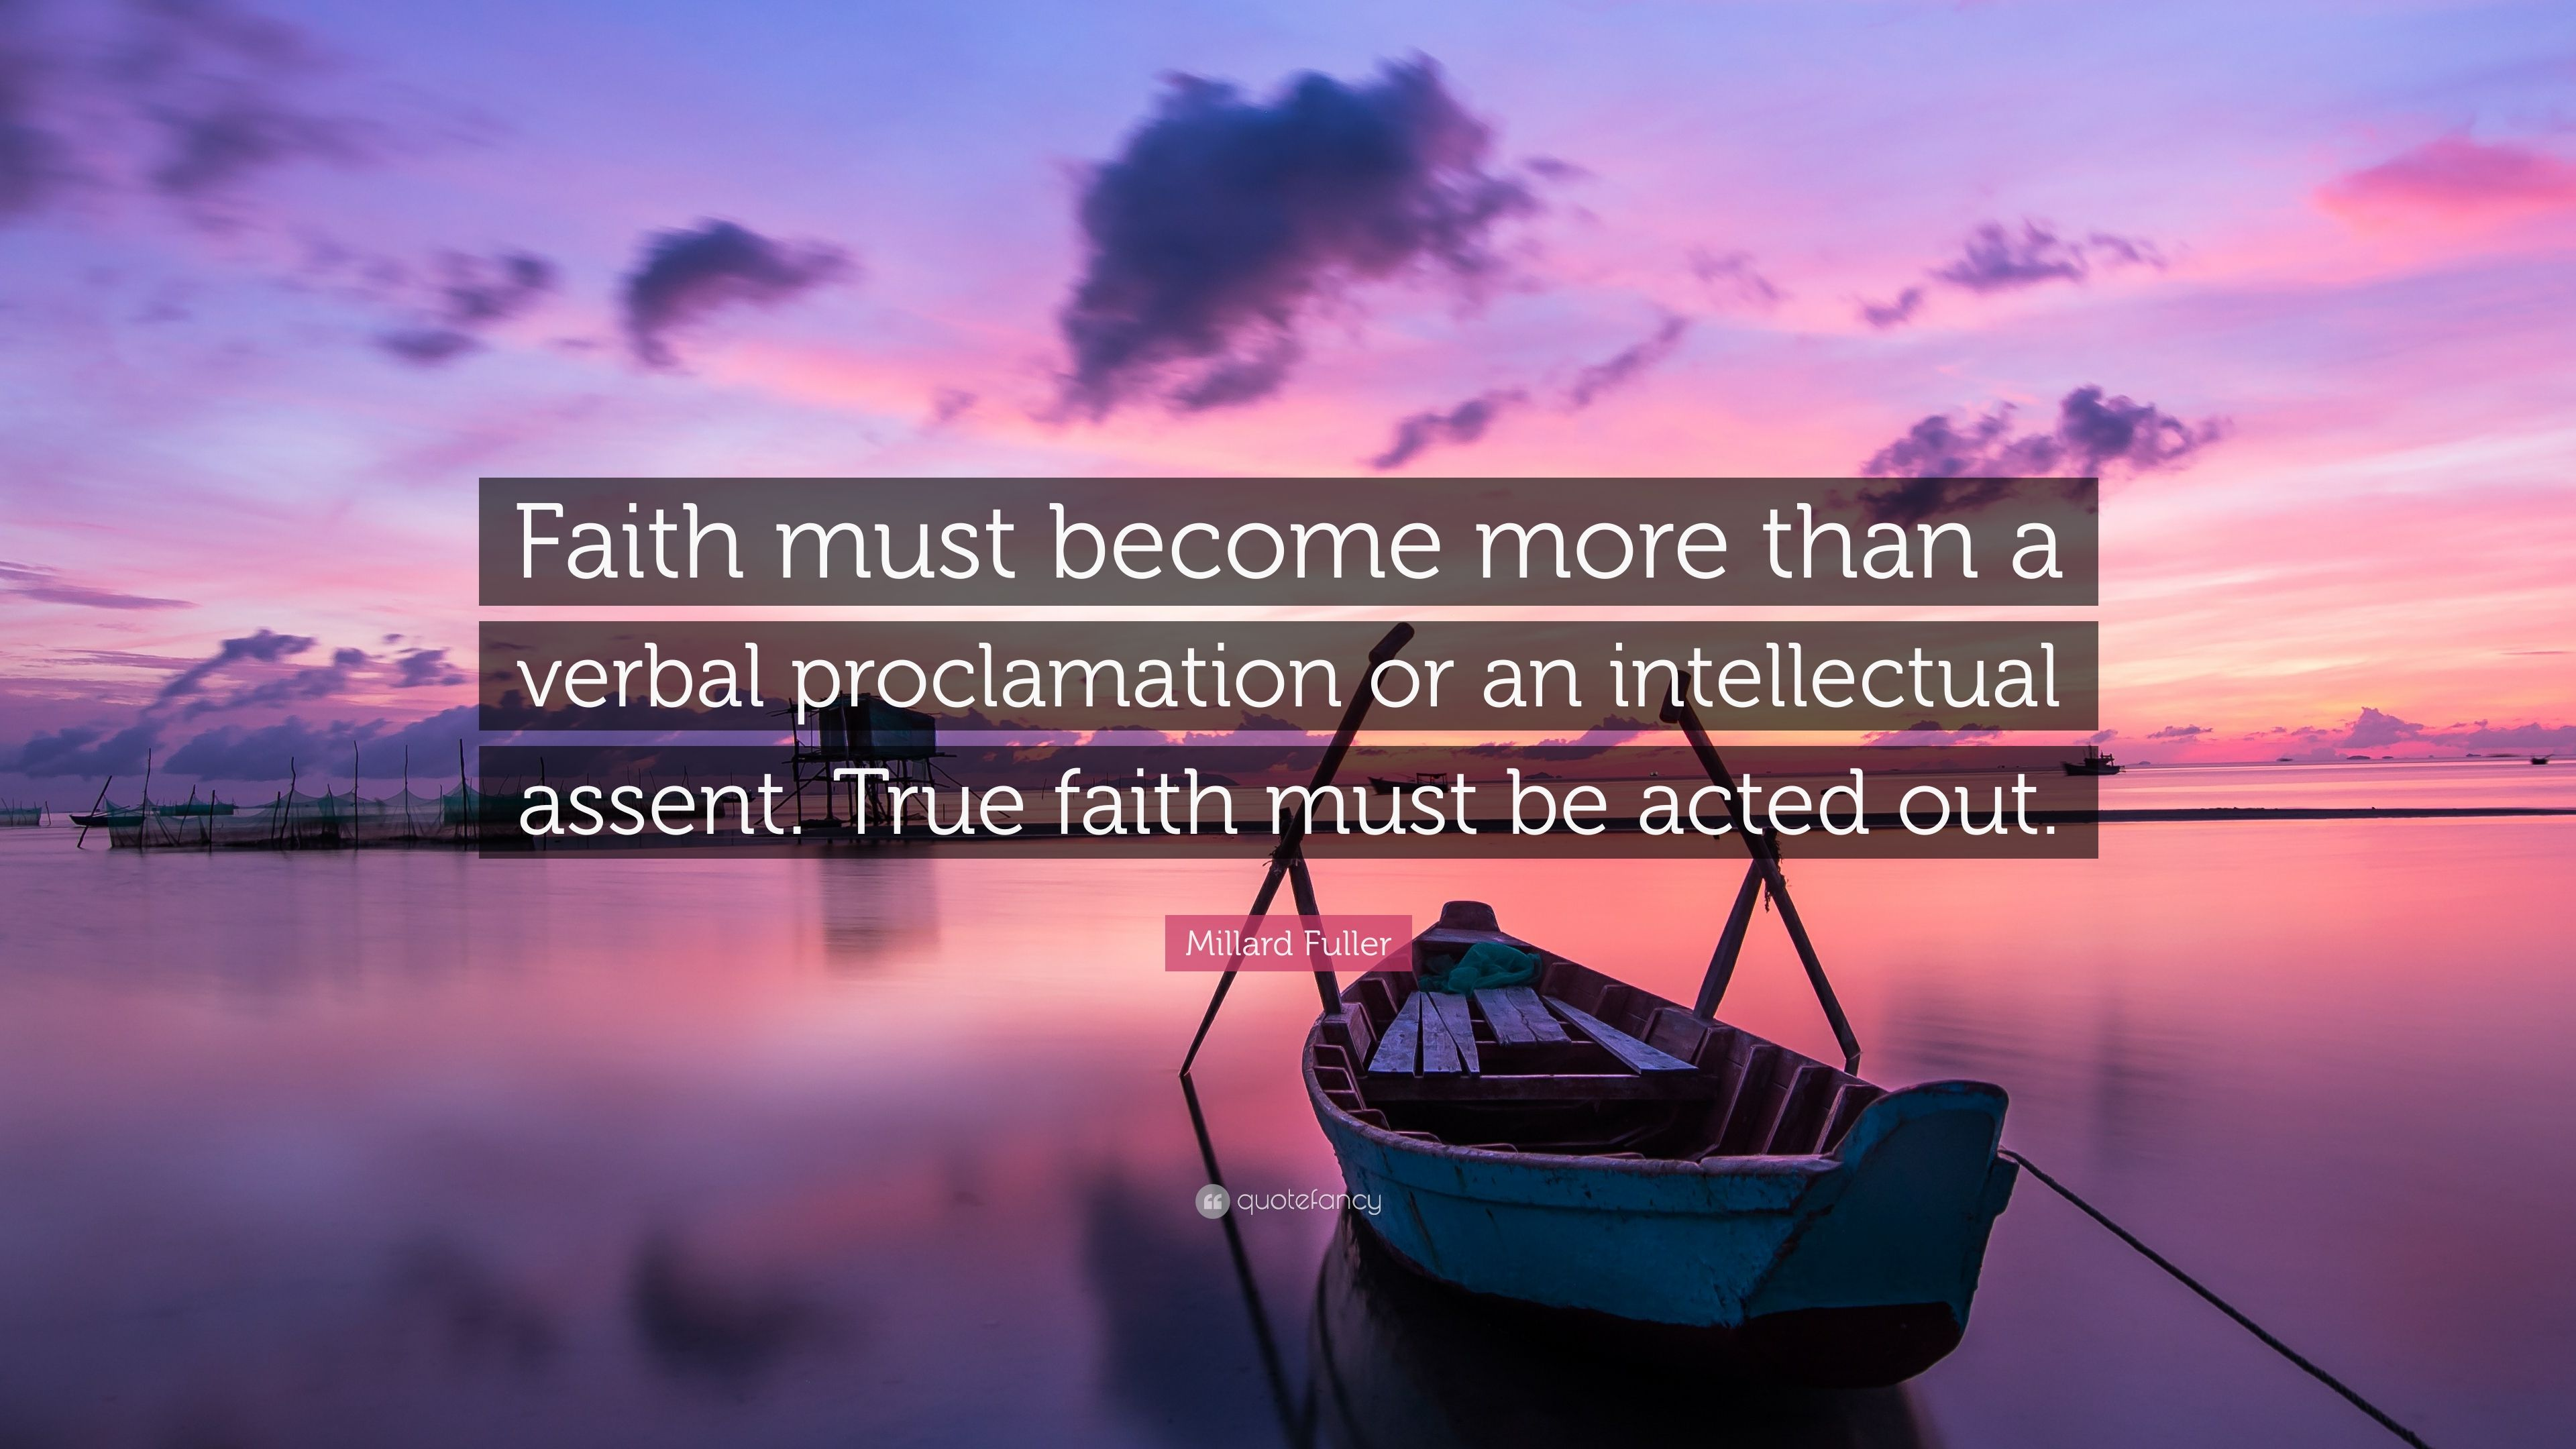 how to become more intellectual